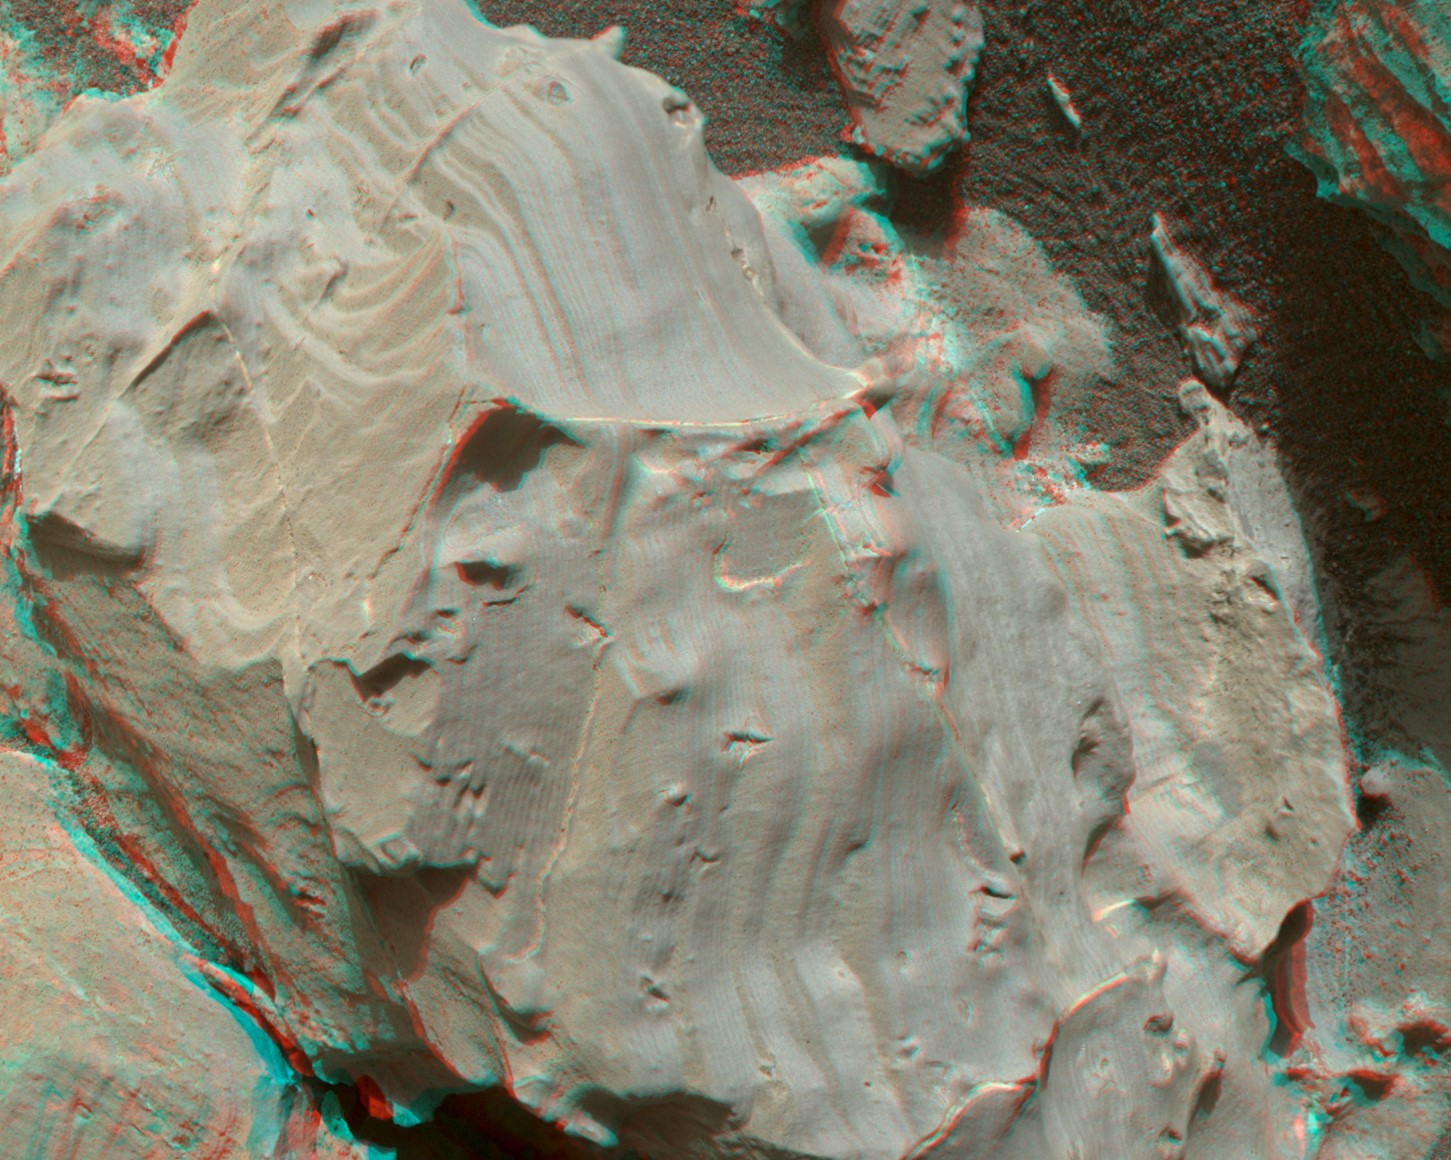 3d view of layered rock